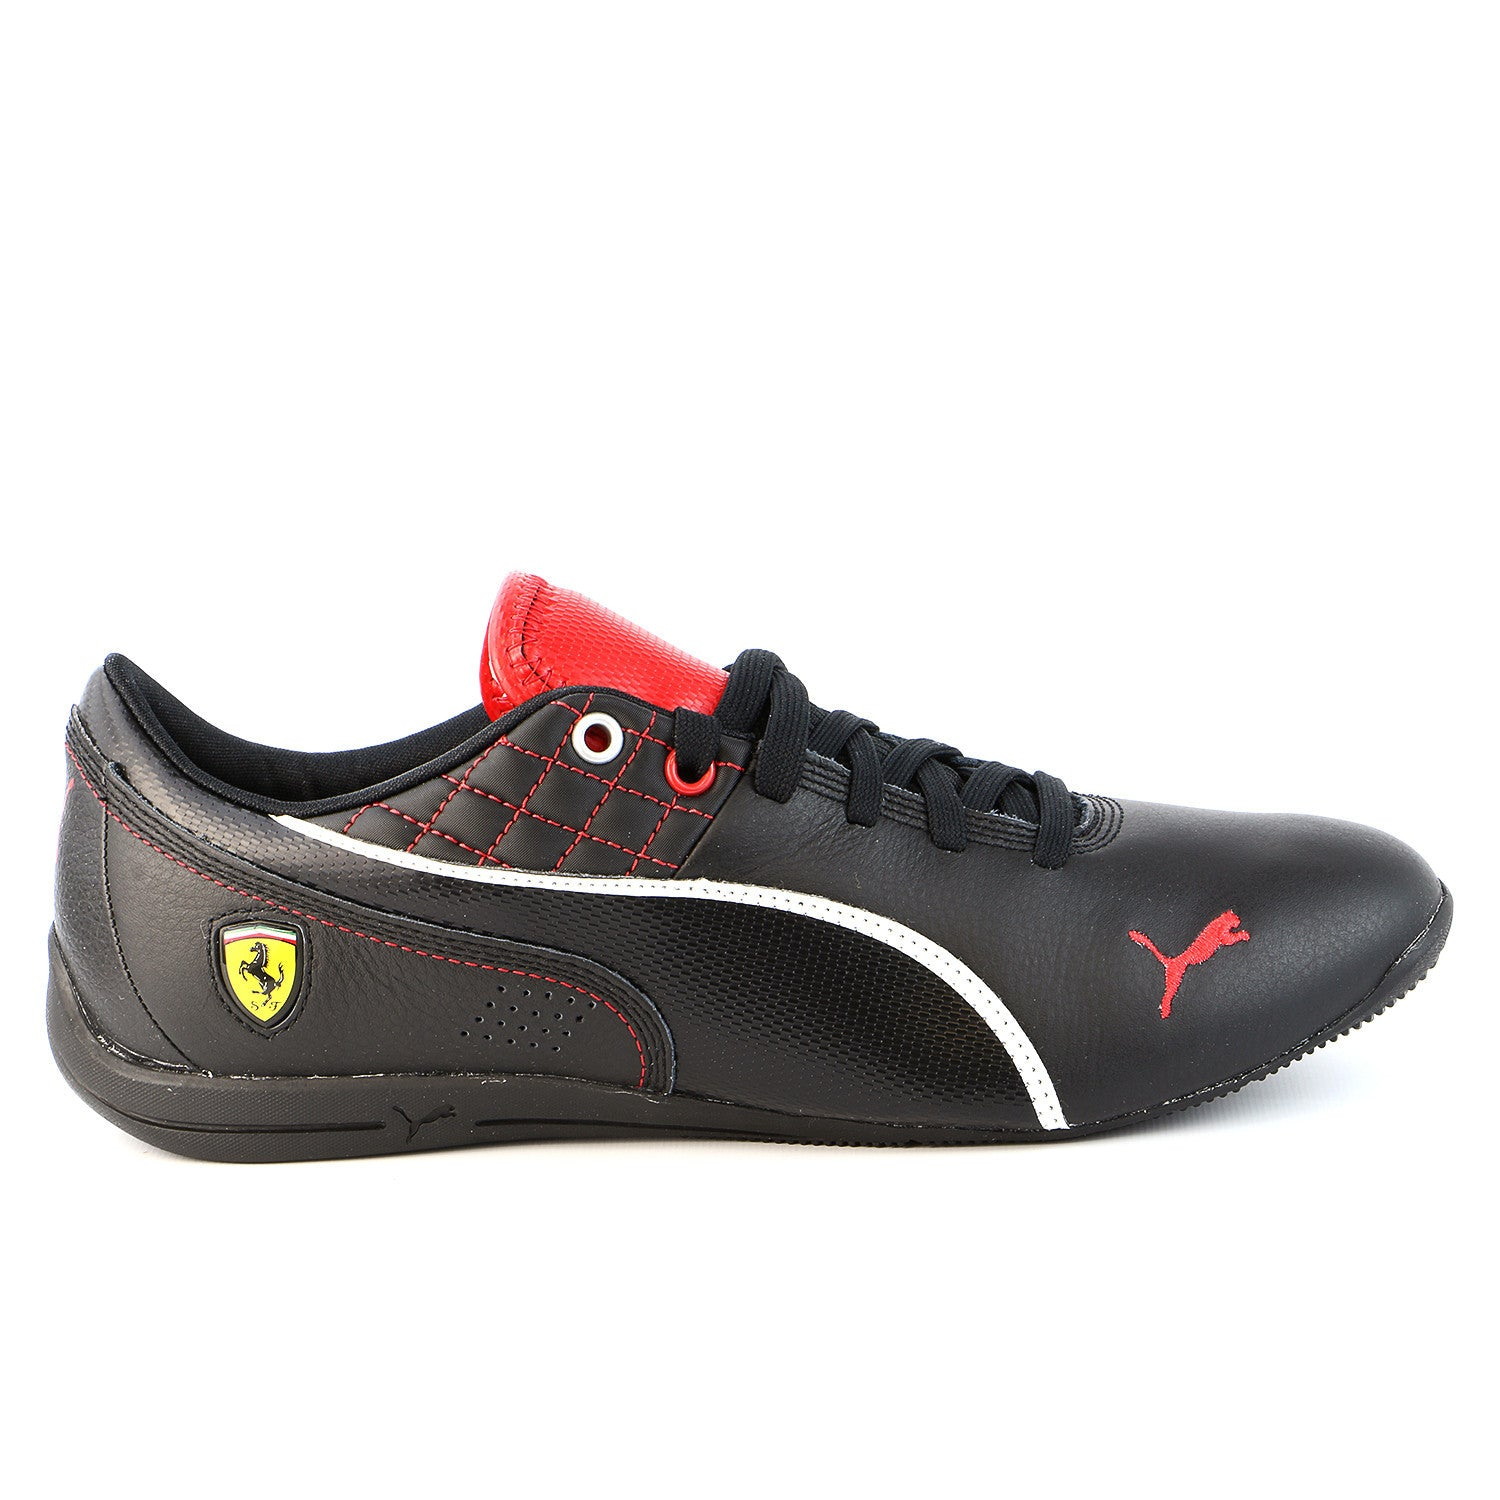 07411ed5e071 Puma Drift CAT 6 SF Flash Fashion Sneaker Motorsport Shoe - Black Rosso  Corsa - Mens